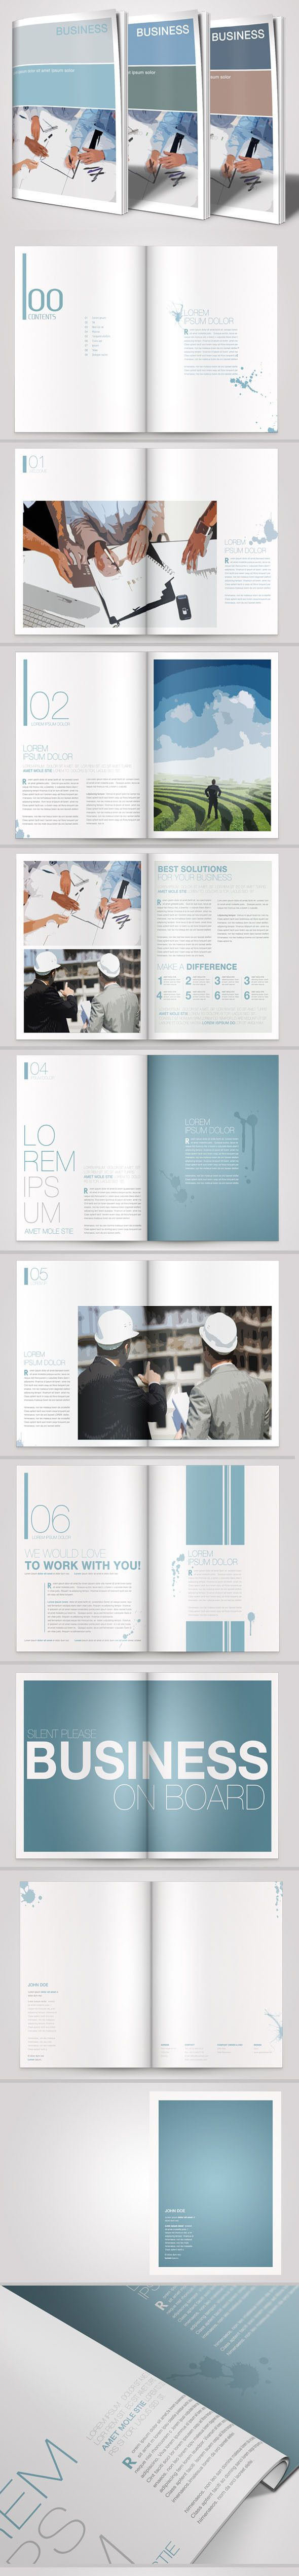 editoral // A4 Business Brochure Vol. 01 by Danijel Mokic